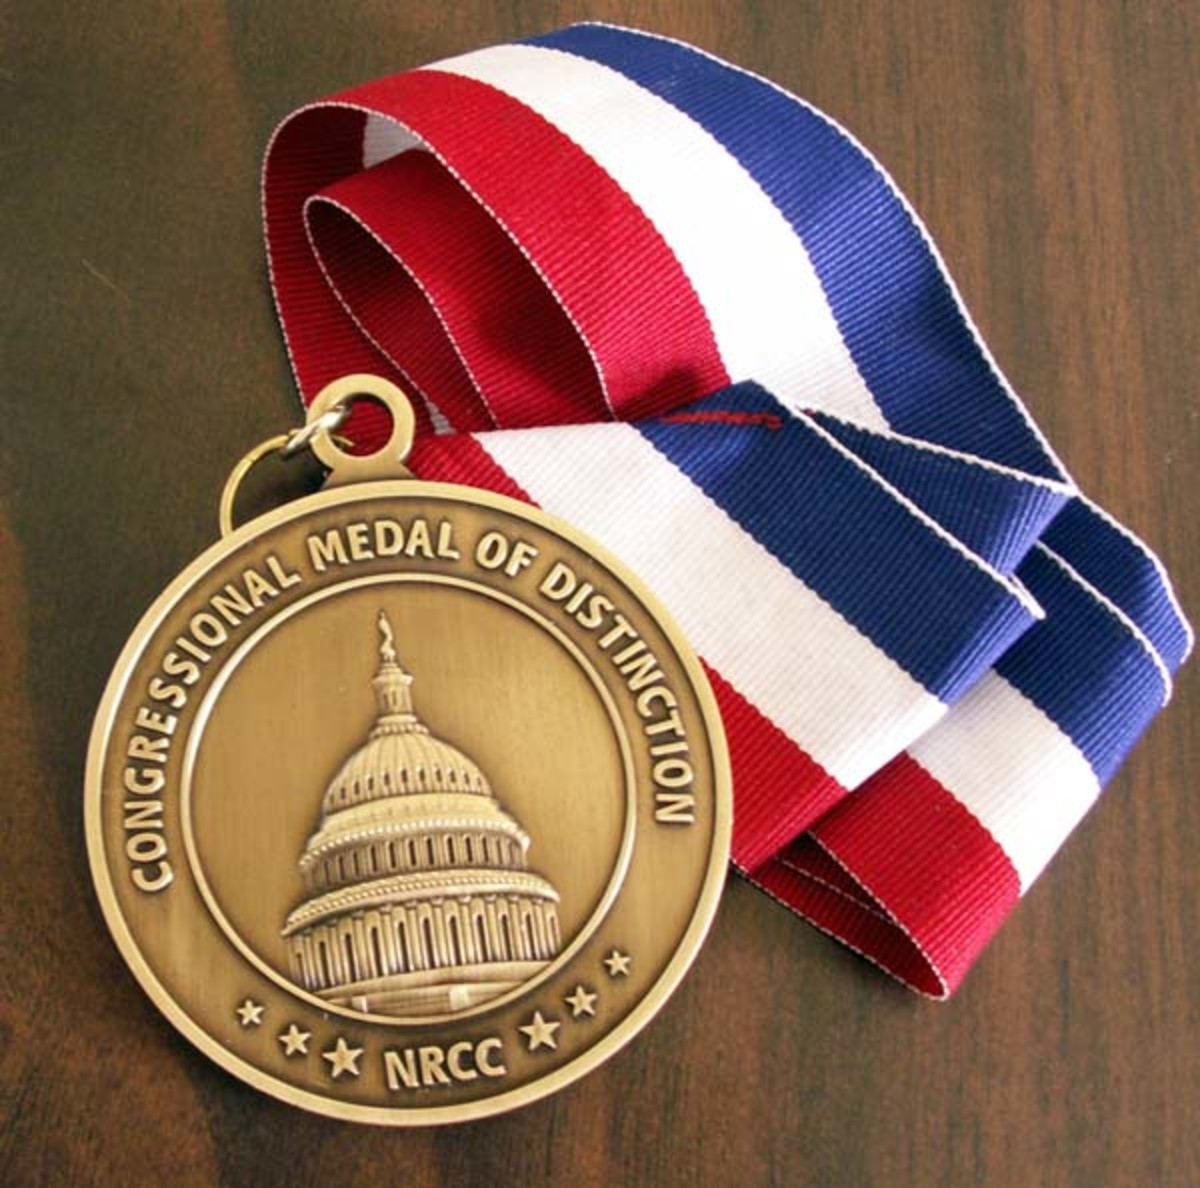 When a Medal Is Not: Us Congressional Medal of Distinction (Not Honor!) From Republican Nrcc Is a